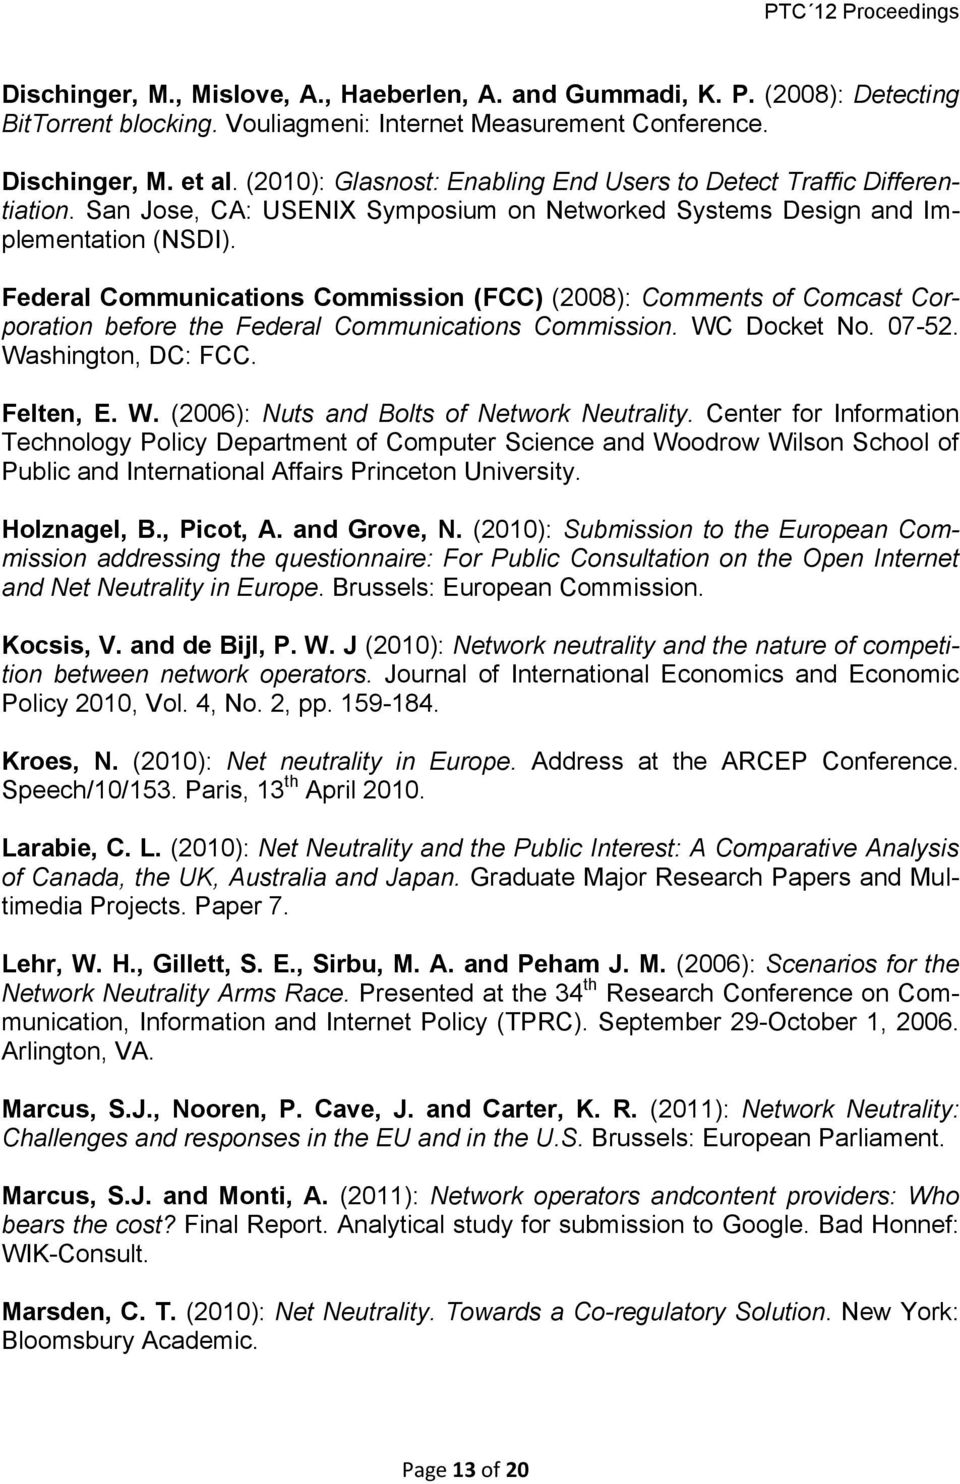 Federal Communications Commission (FCC) (2008): Comments of Comcast Corporation before the Federal Communications Commission. WC Docket No. 07-52. Washington, DC: FCC. Felten, E. W. (2006): Nuts and Bolts of Network Neutrality.